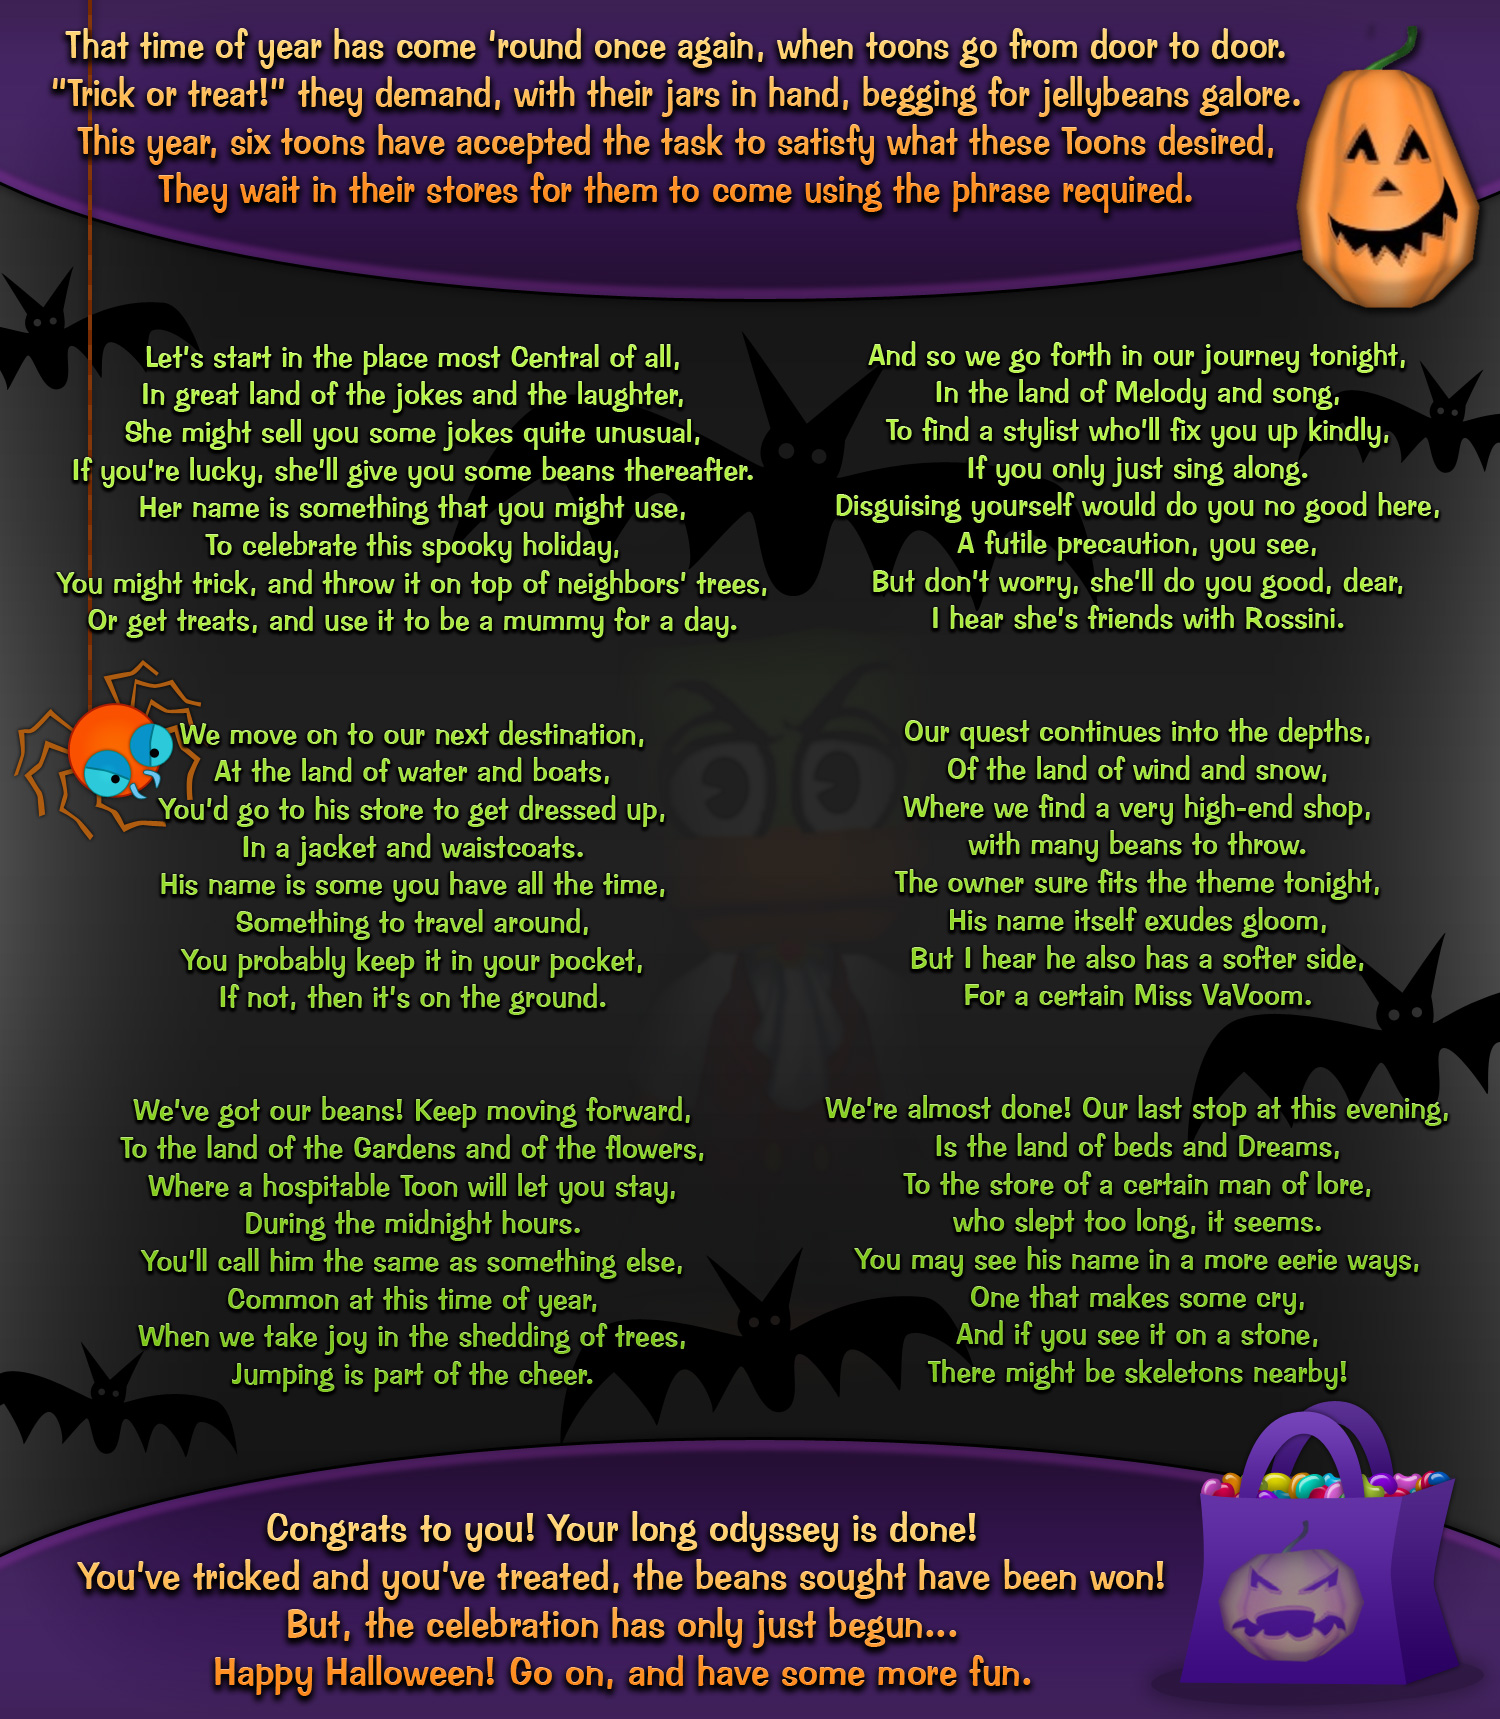 TTR Halloween Trick or treat shops! : Toontown